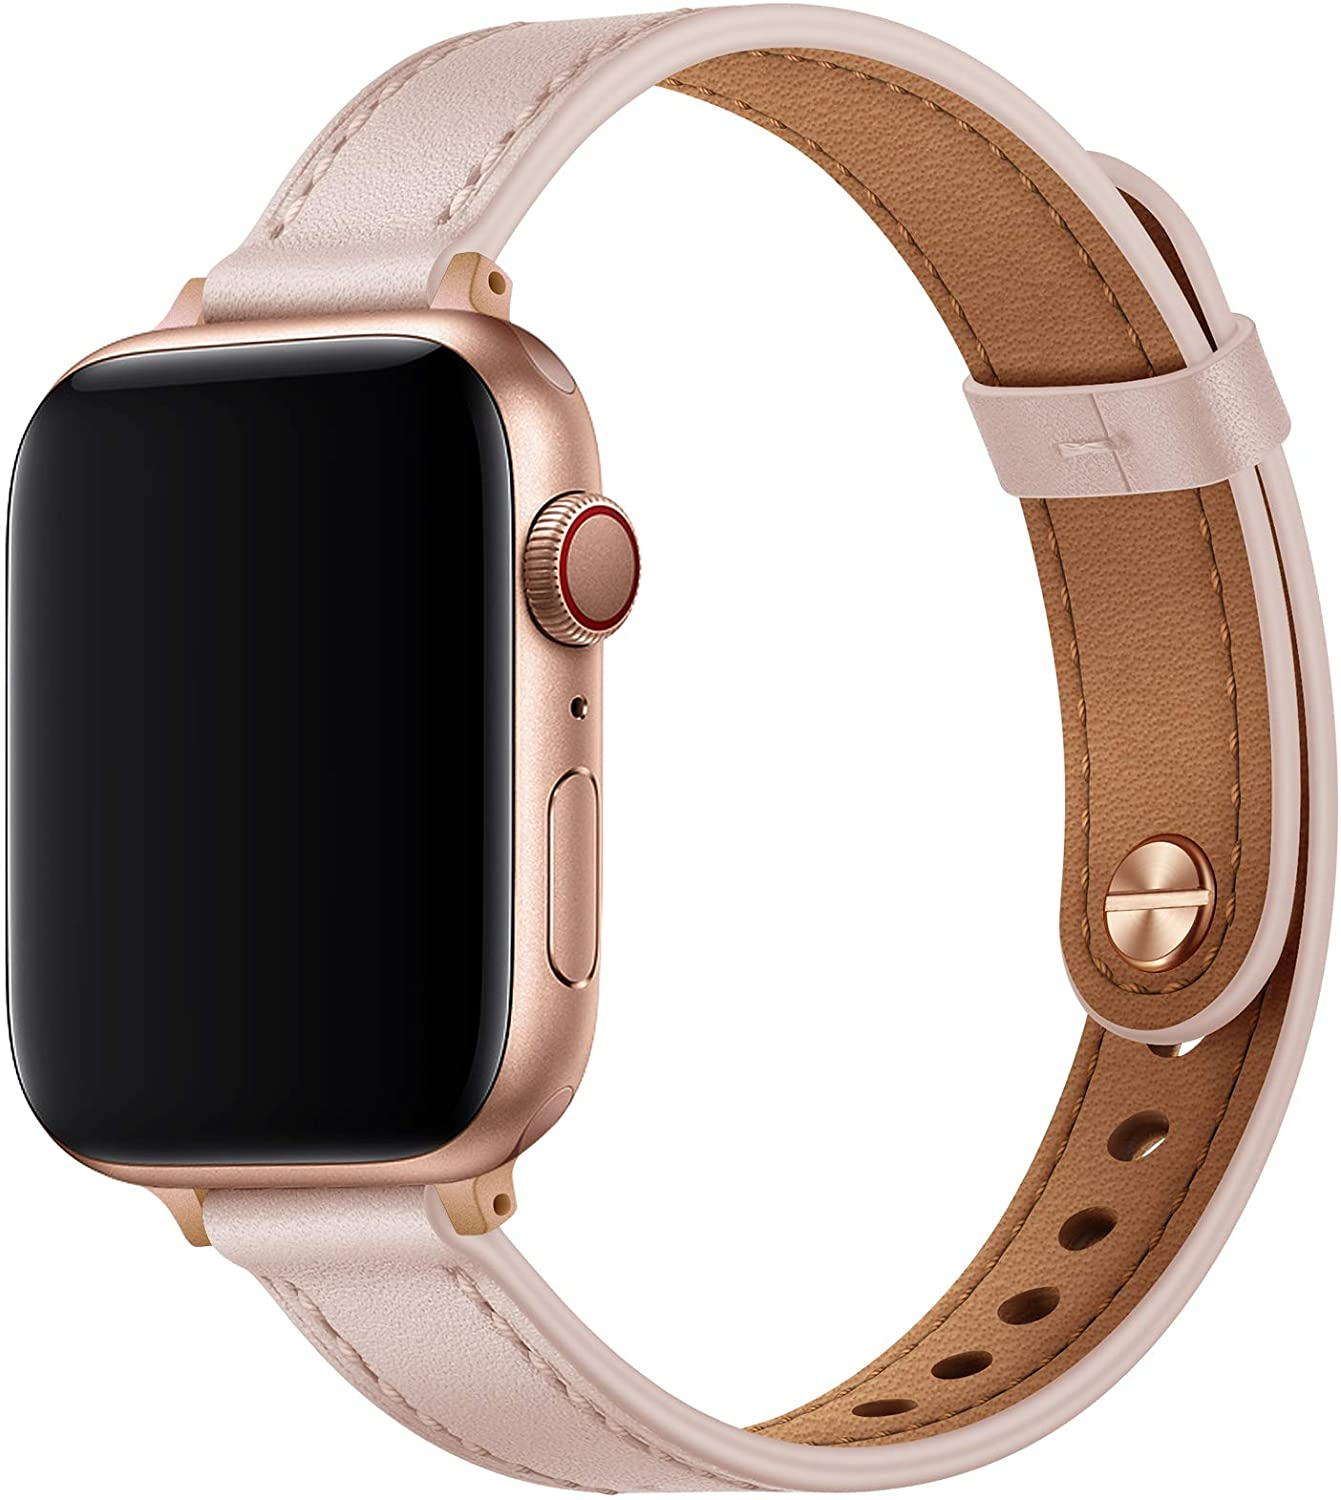 OUHENG Slim Band Compatible with Apple Watch Band 40mm 38mm 44mm 42mm, Women Genuine Leather Band Replacement Thin Strap for iWatch SE Series 6 5 4 3 2 1 (Pink Sand/Rose Gold, 40mm 38mm)